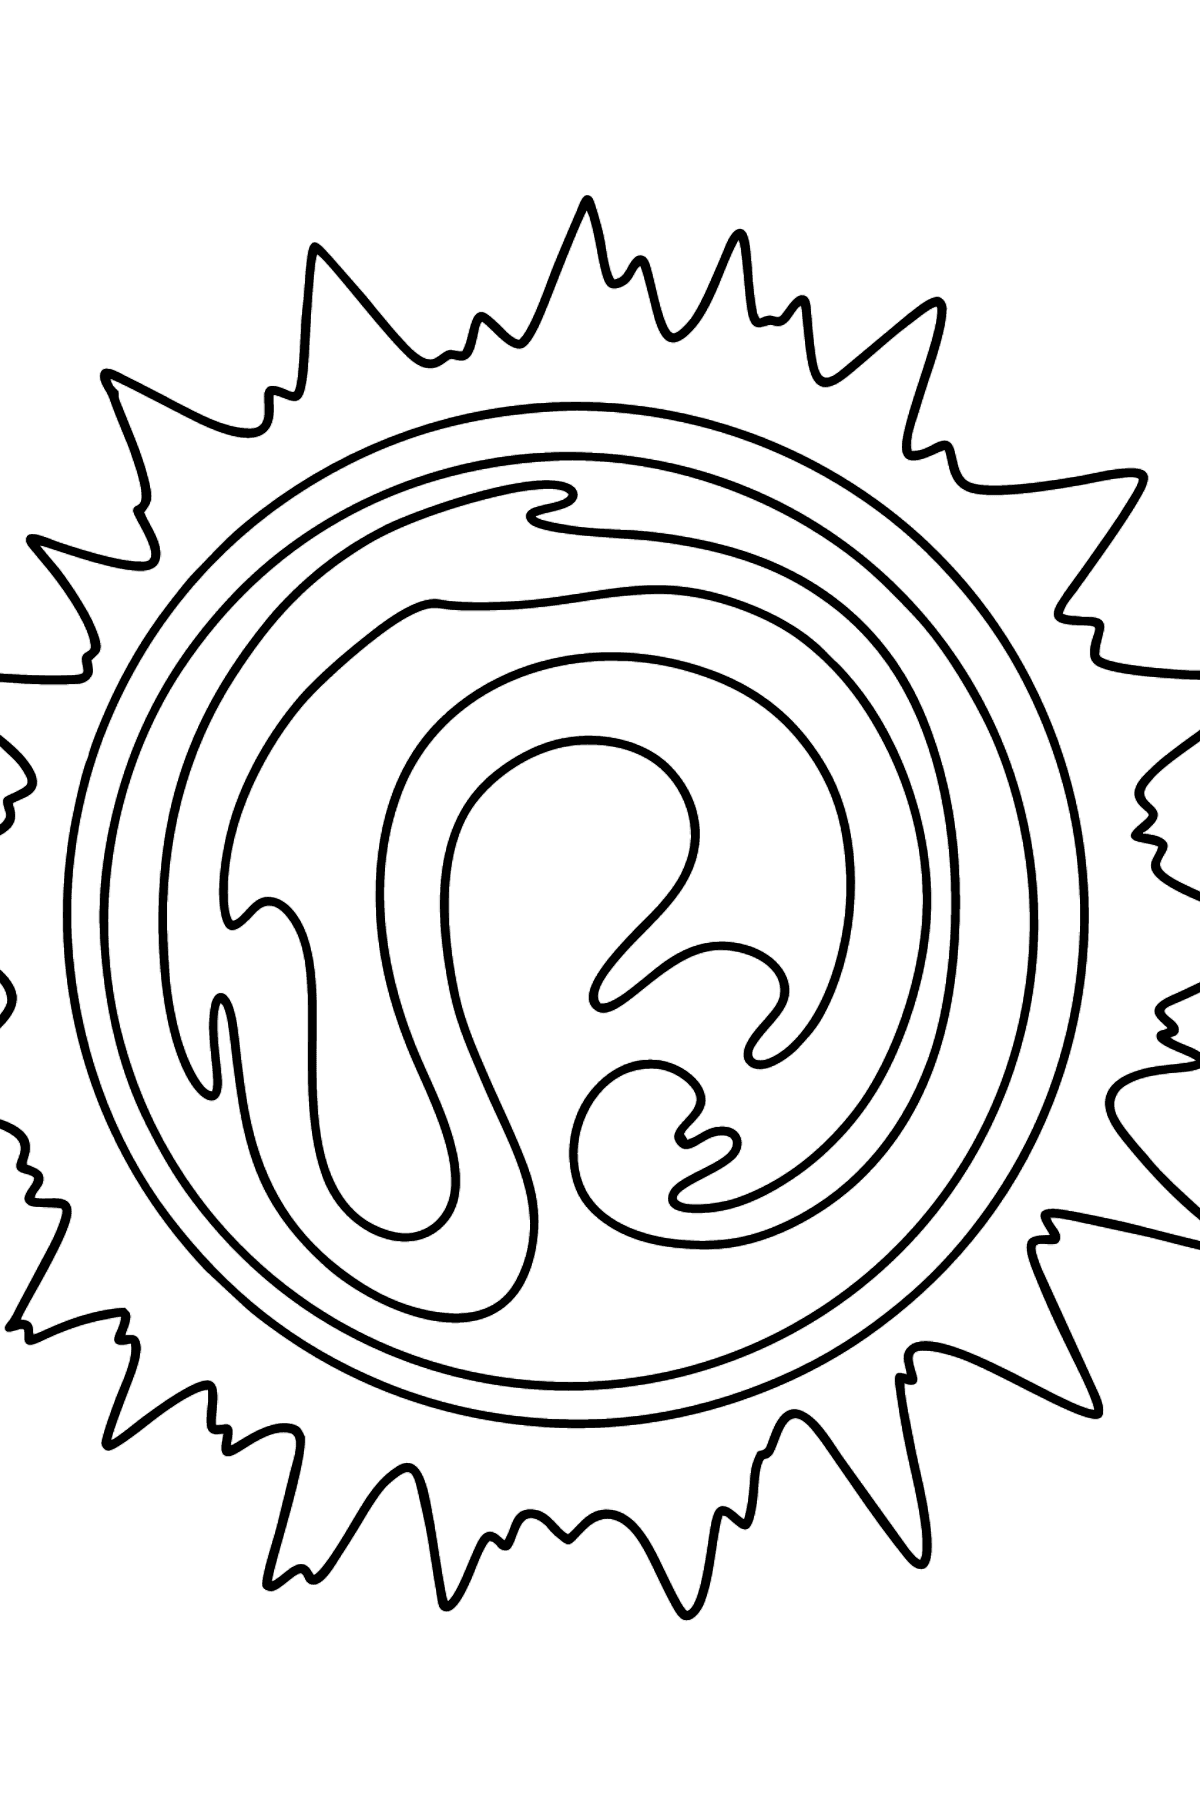 Sun - Solar System Star coloring page - Coloring Pages for Kids